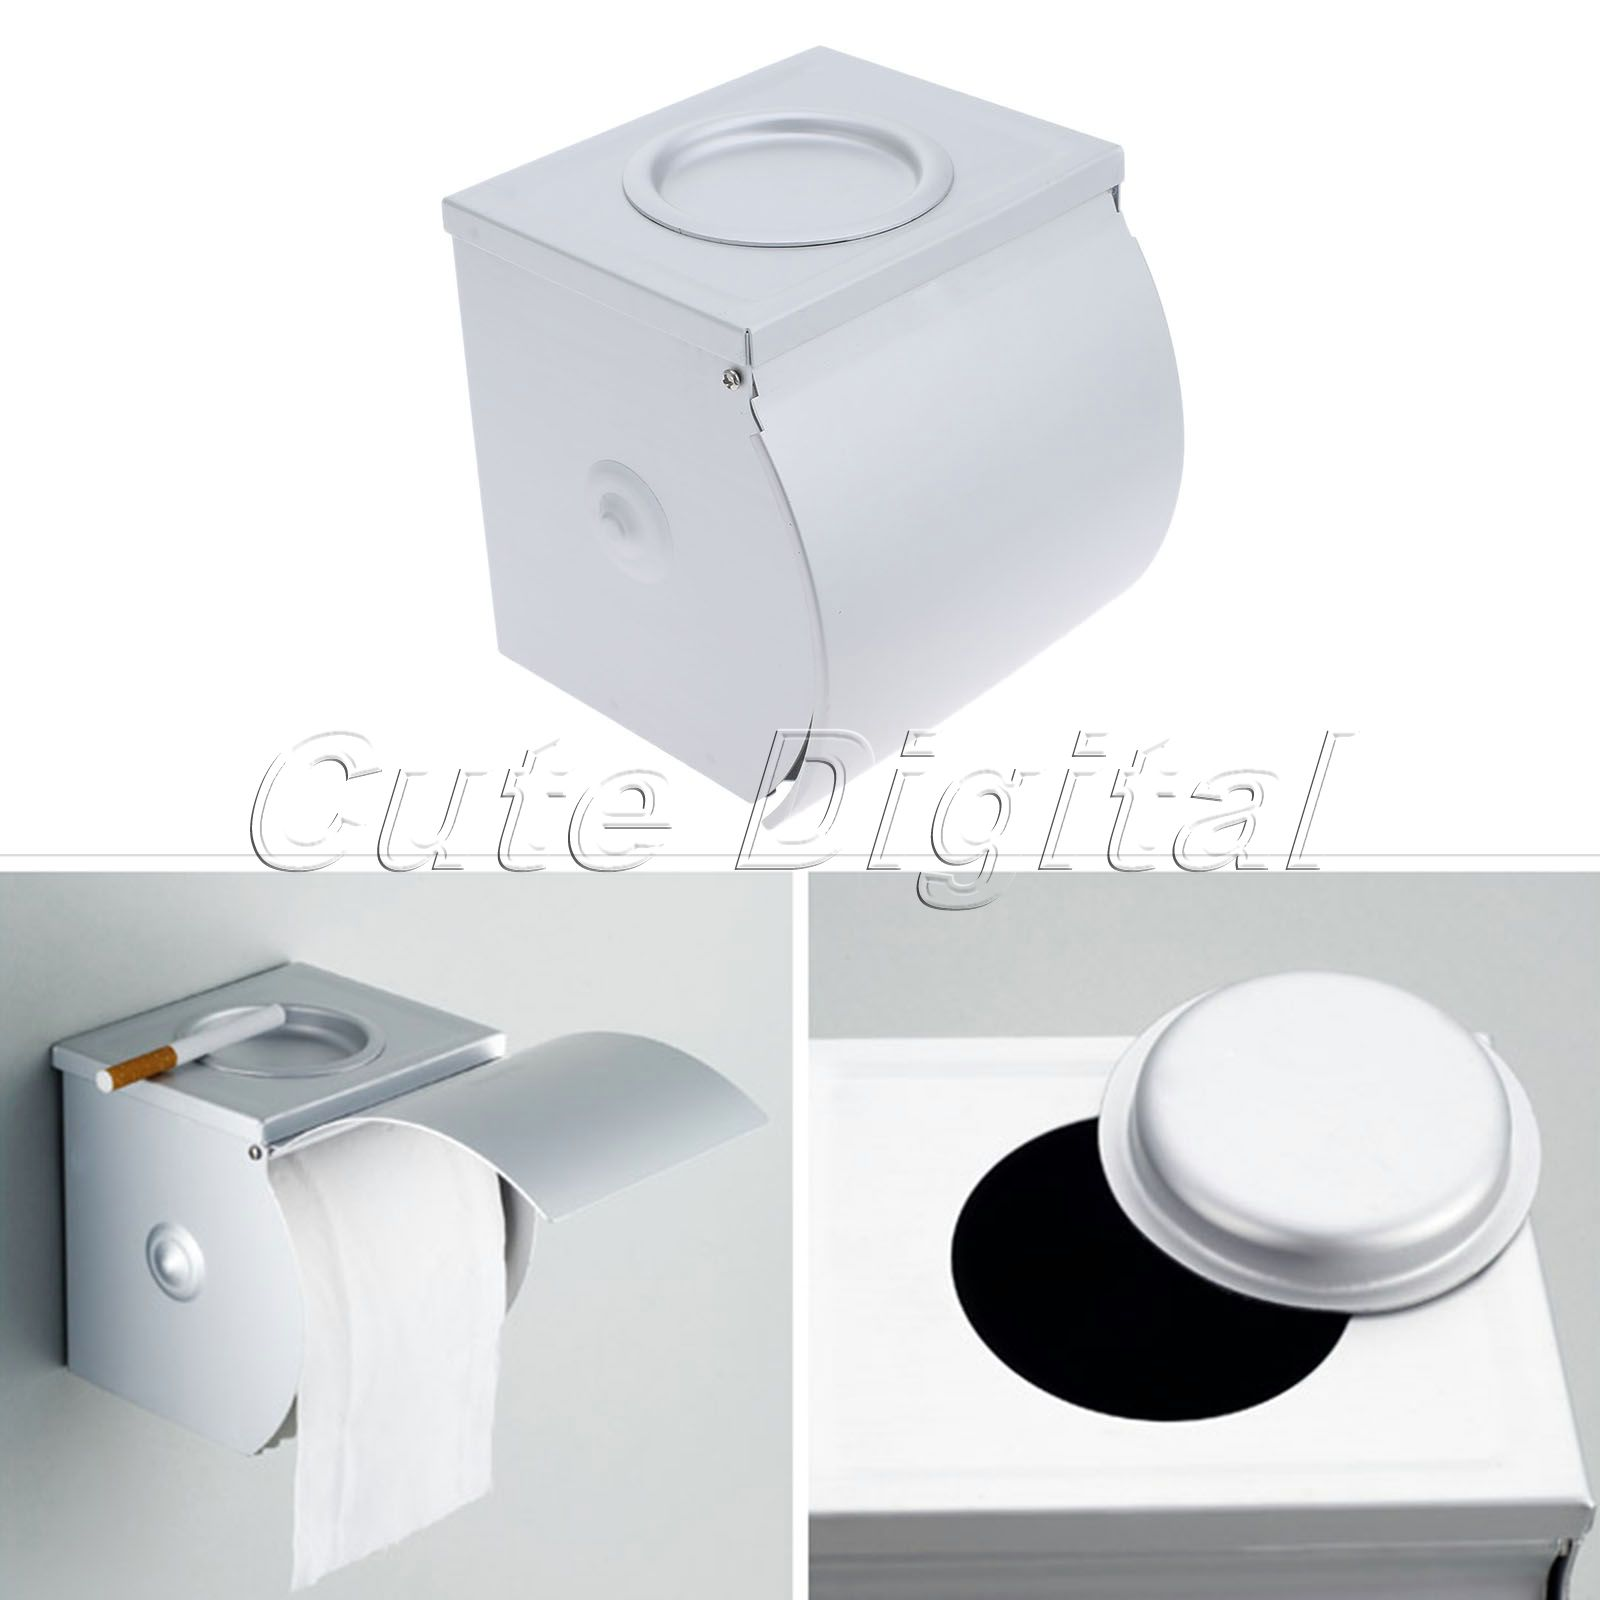 Bathroom Paper Box Wall Mounted Space Aluminum Waterproof Toilet Roll Tissue Paper Holder and Dispenser Hanger with Ashtray space aluminum paper holder roll tissue holder hotel works toilet roll paper tissue holder box waterproof design